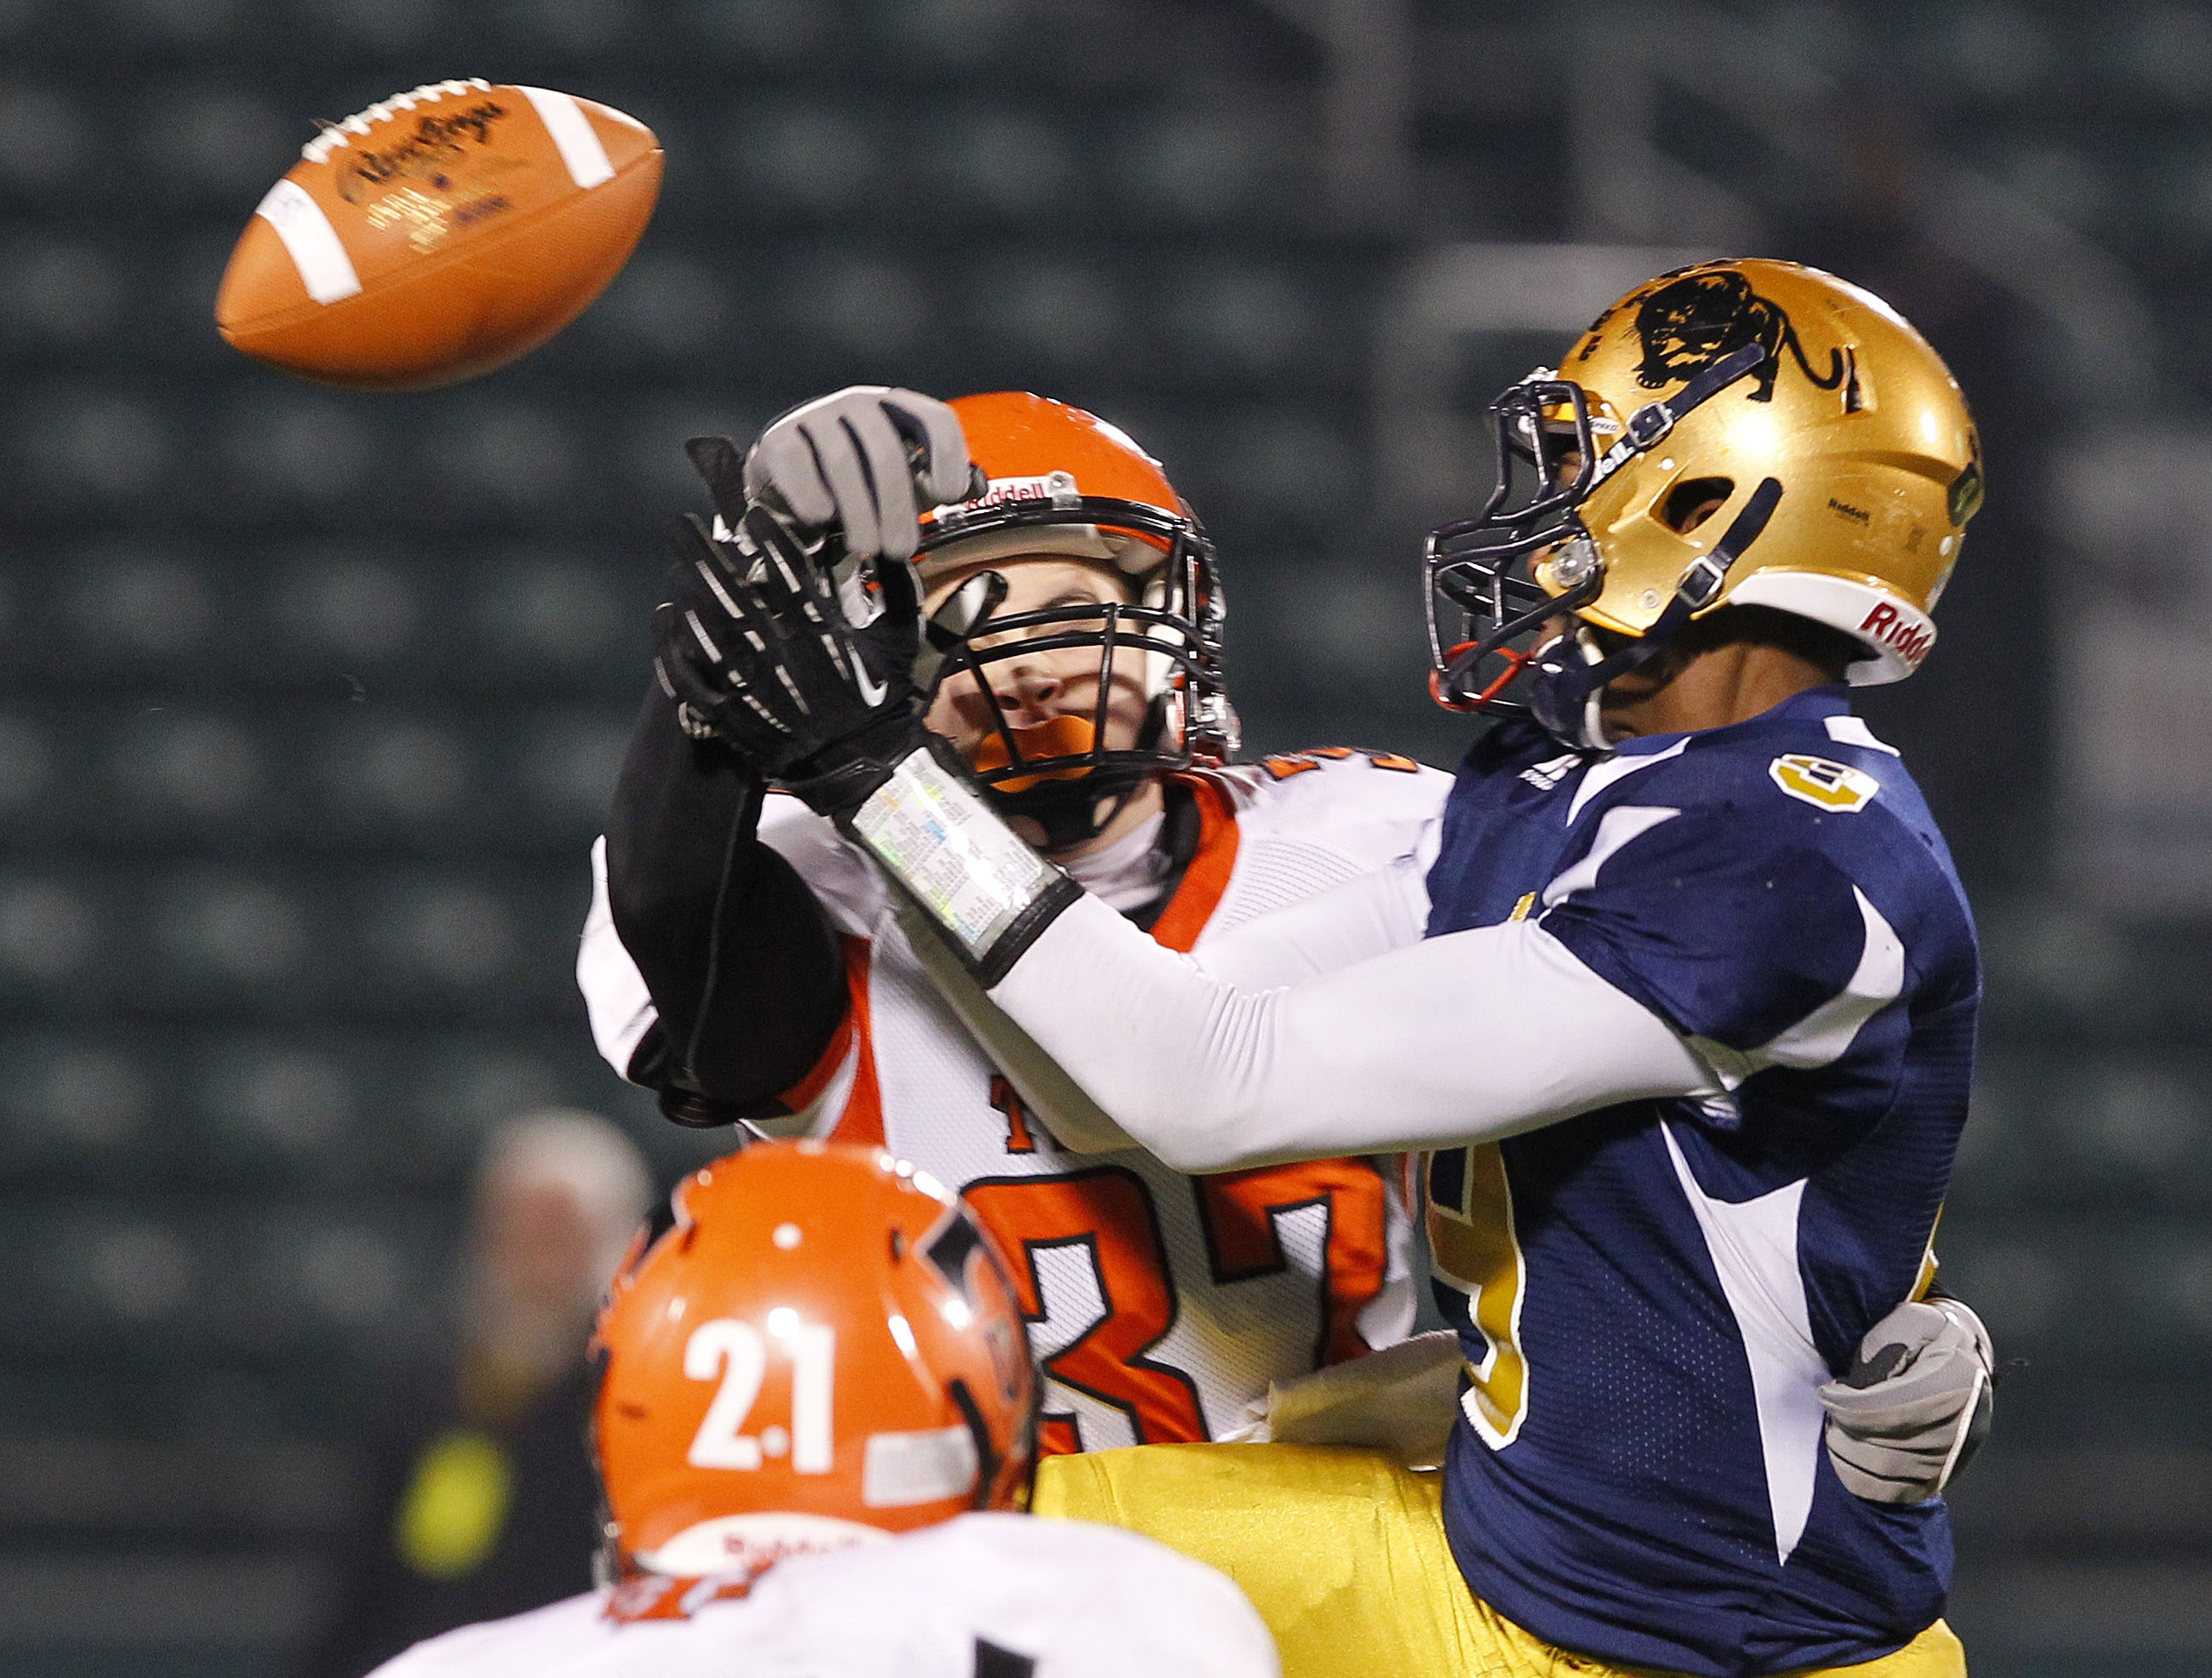 Union-Endicott's Matt DePalmo, left, knocks a pass away from Sweet Home's Calvin Martin during NYS Class A semifinal playoff football action football action at Sahlen's Stadium in Rochester Friday evening, November 16, 2012.